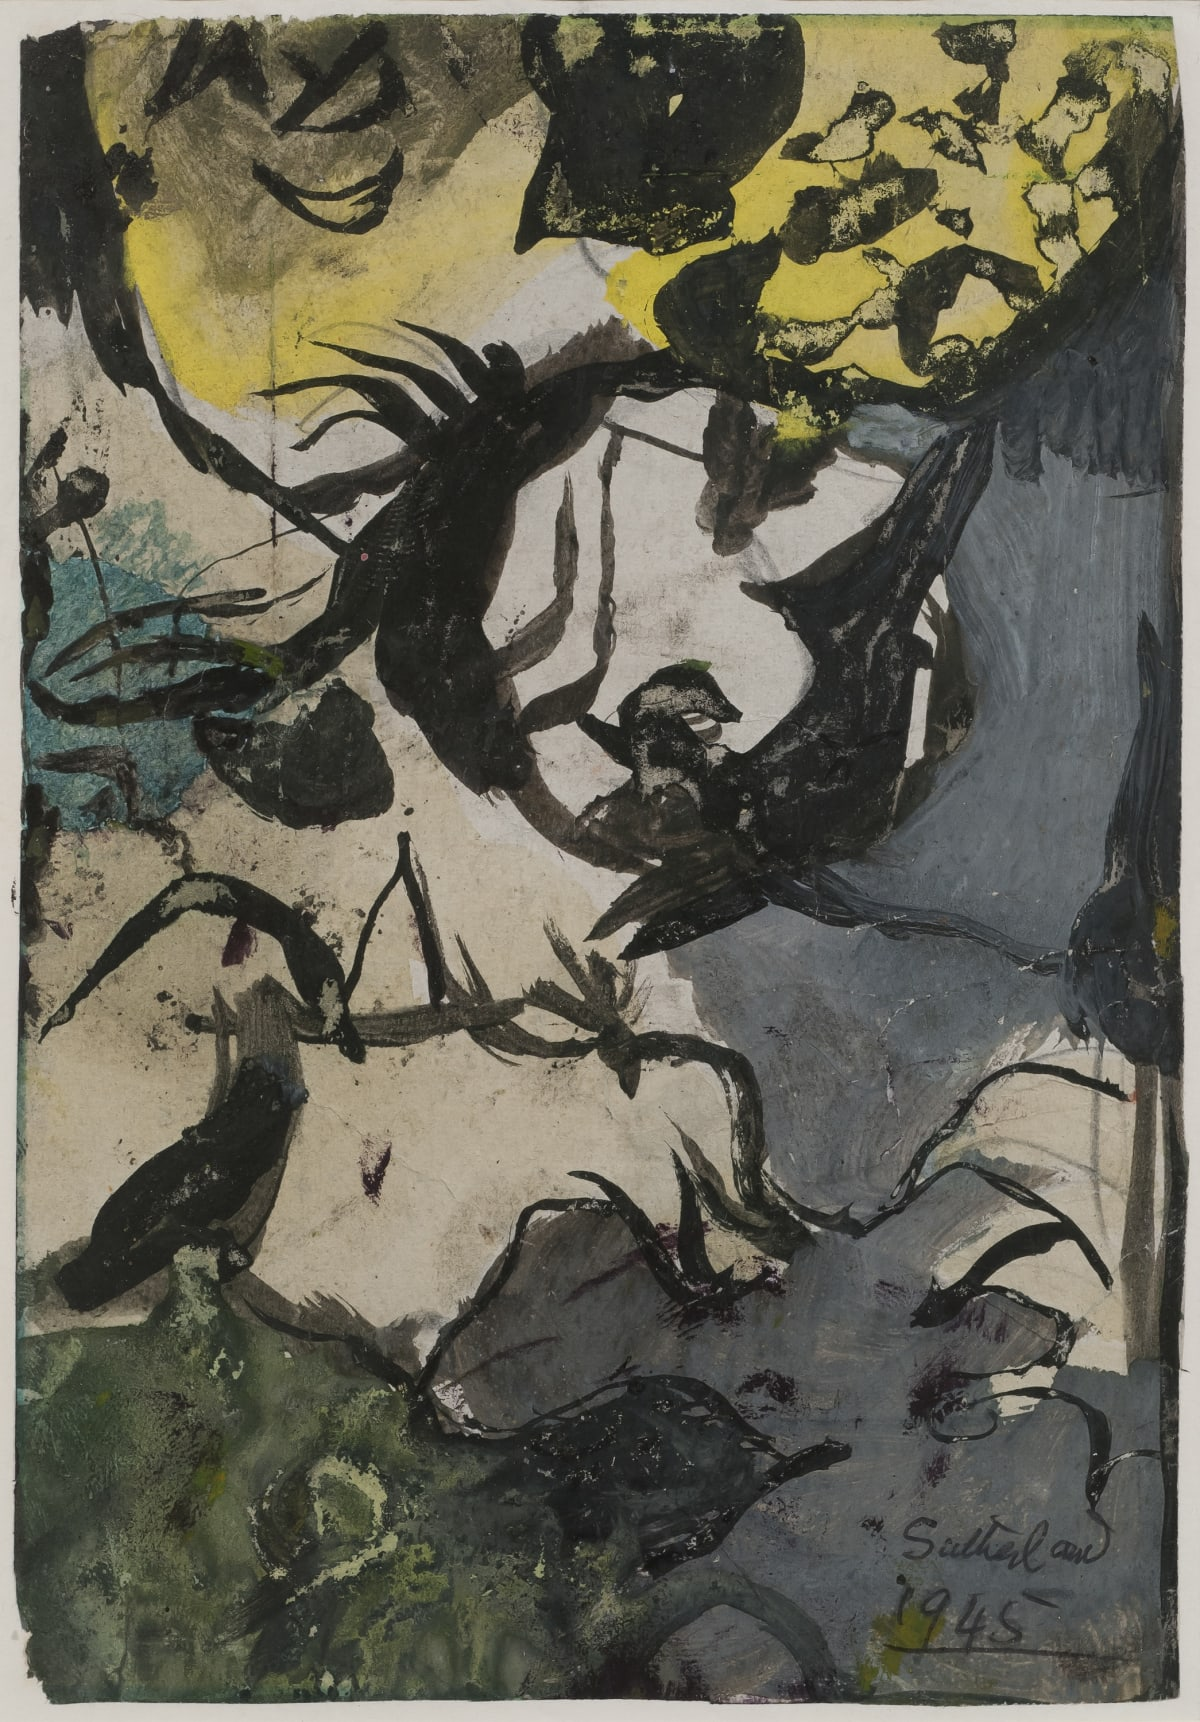 Graham Sutherland, Study for Entrance to a Lane, 1945